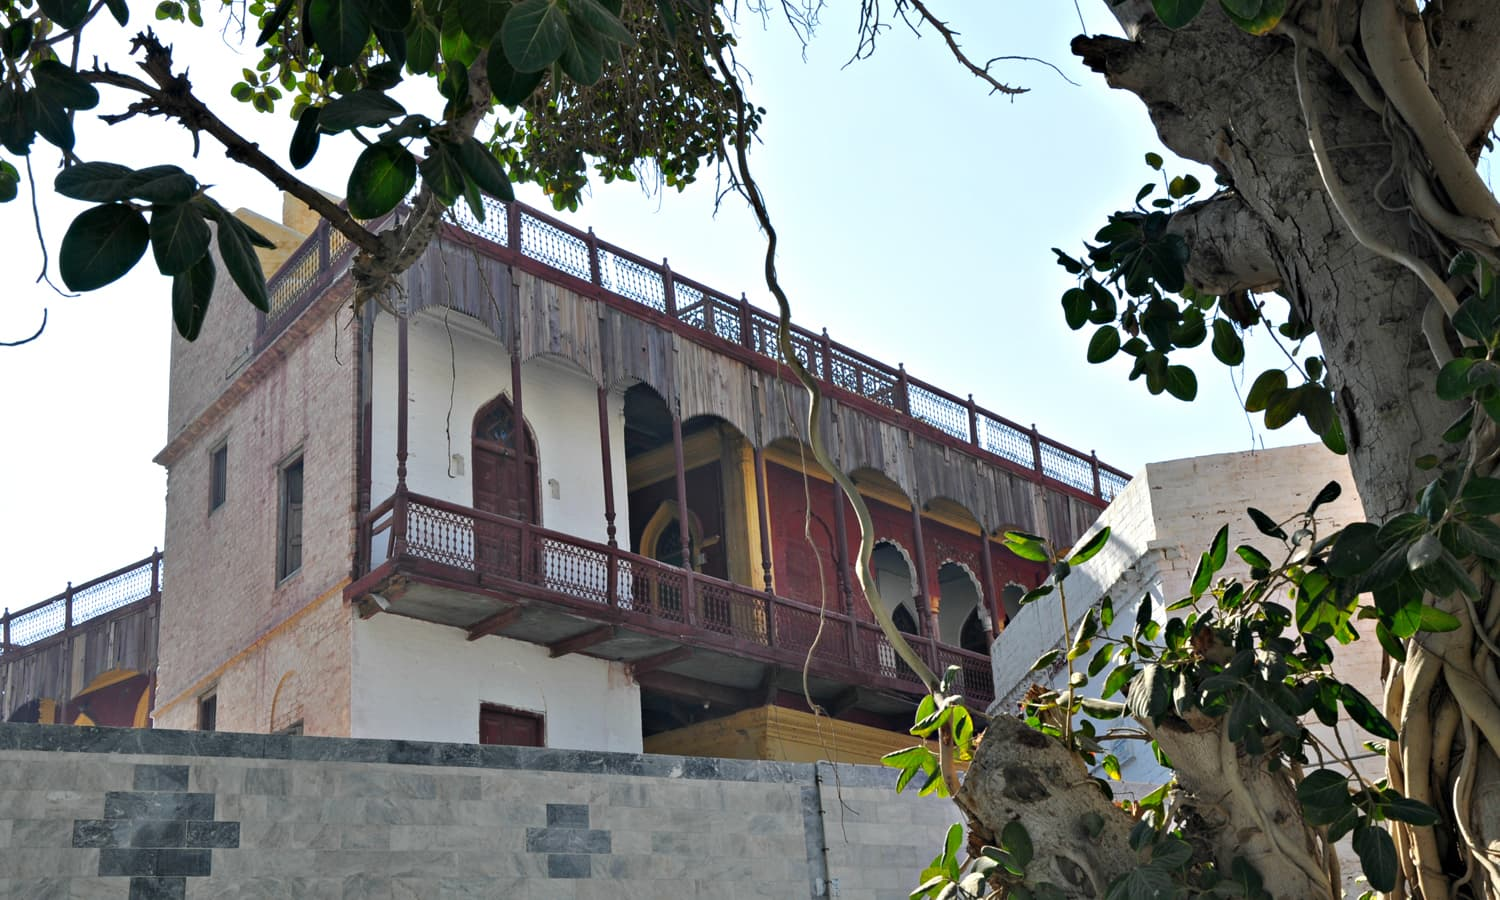 Sadho Belo - The view of residential quarters and offices